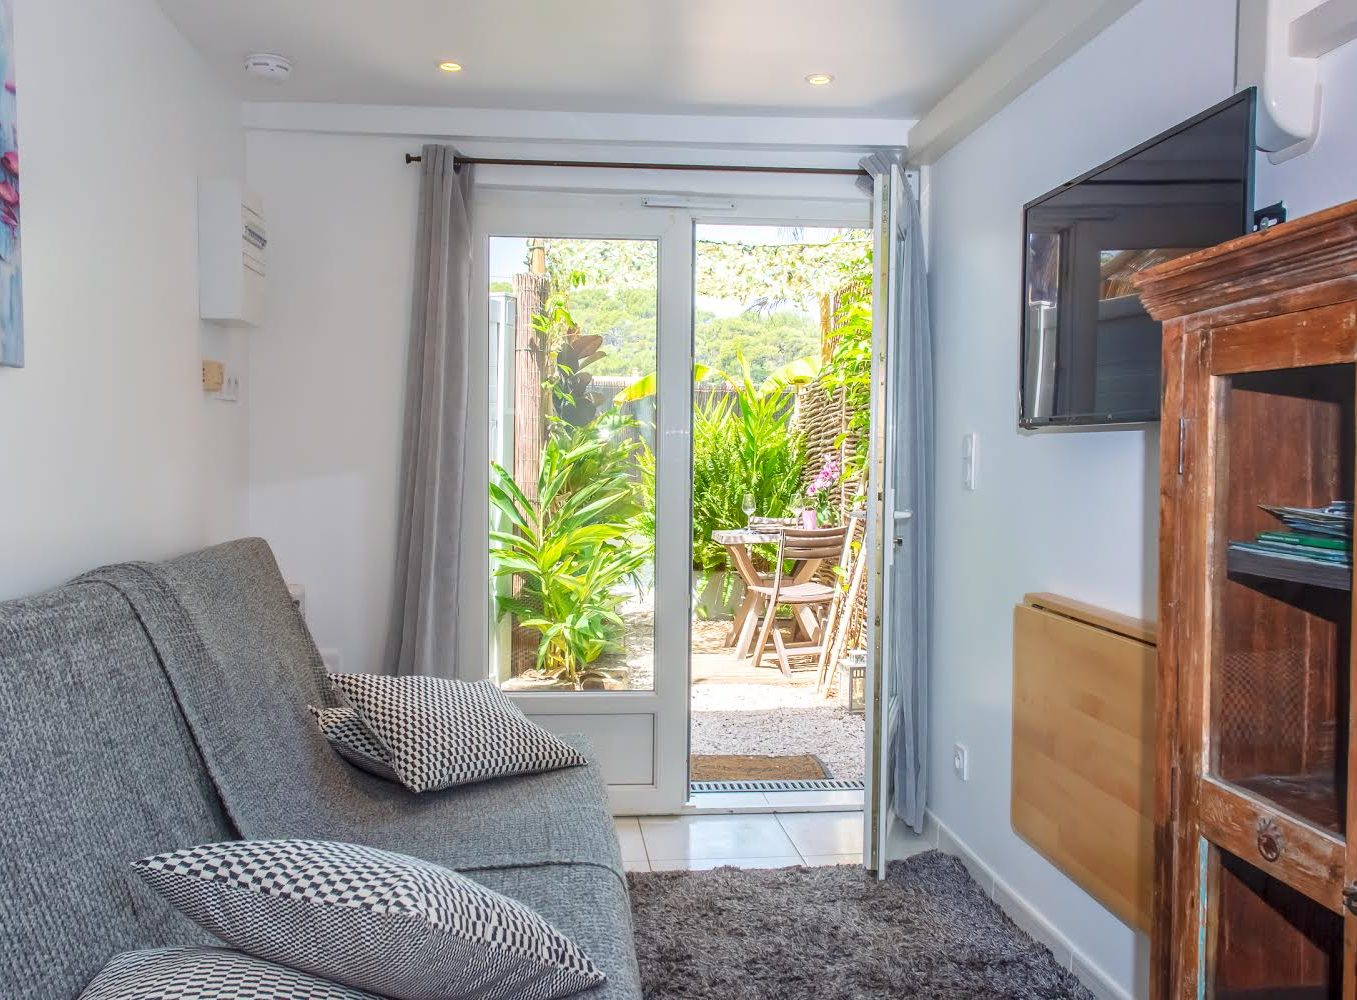 Rental studio giens hyeres french riviera Moorea piece